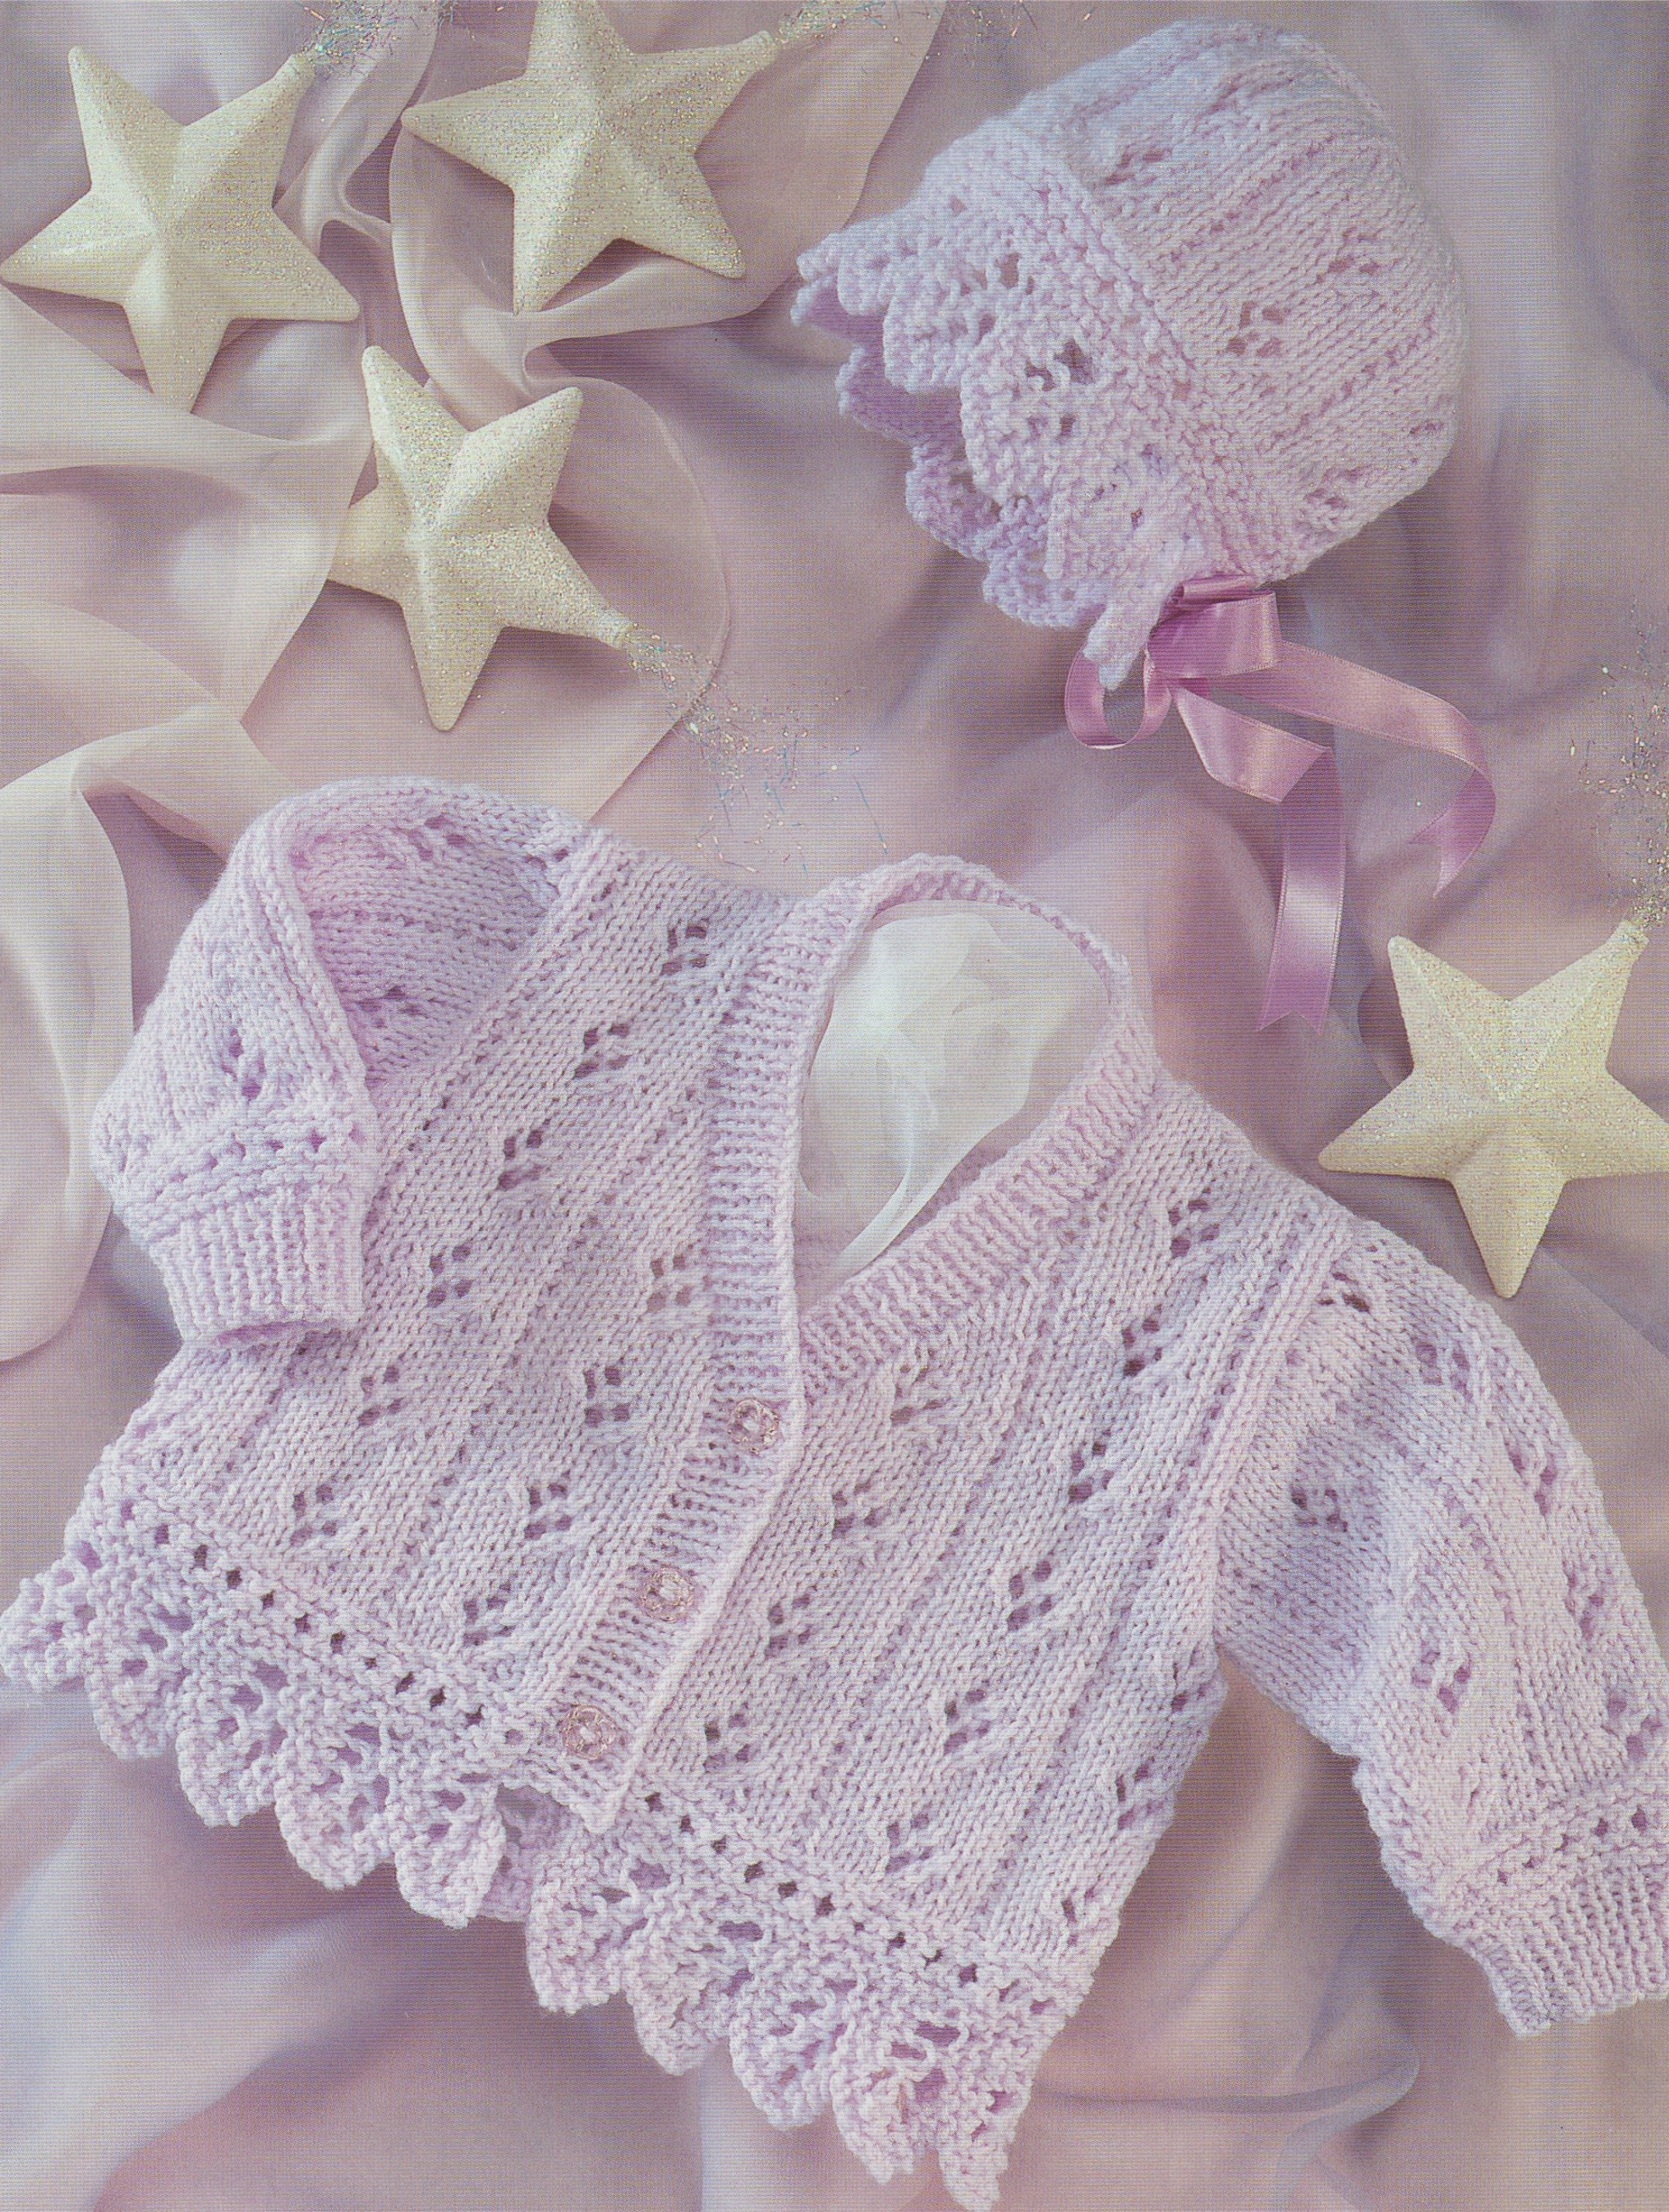 acfbac09c3d1 Baby Girls Cardigan and Bonnet Knitting Pattern PDF Babies Toddlers ...